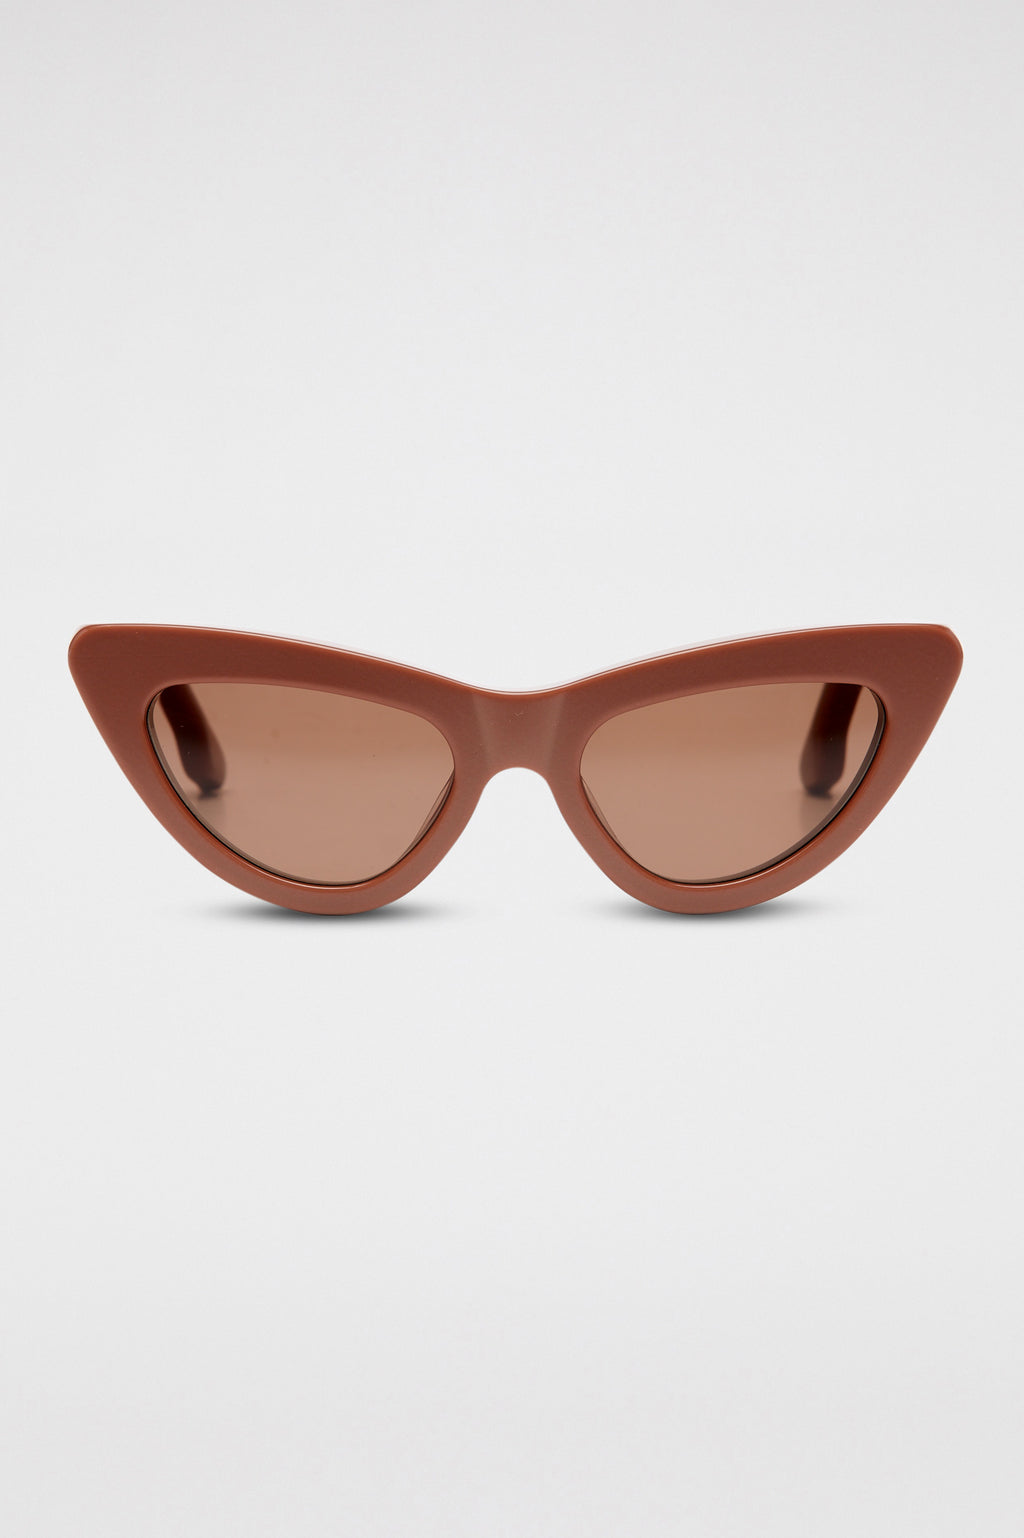 ST FELINE CAT SUNGLASSES